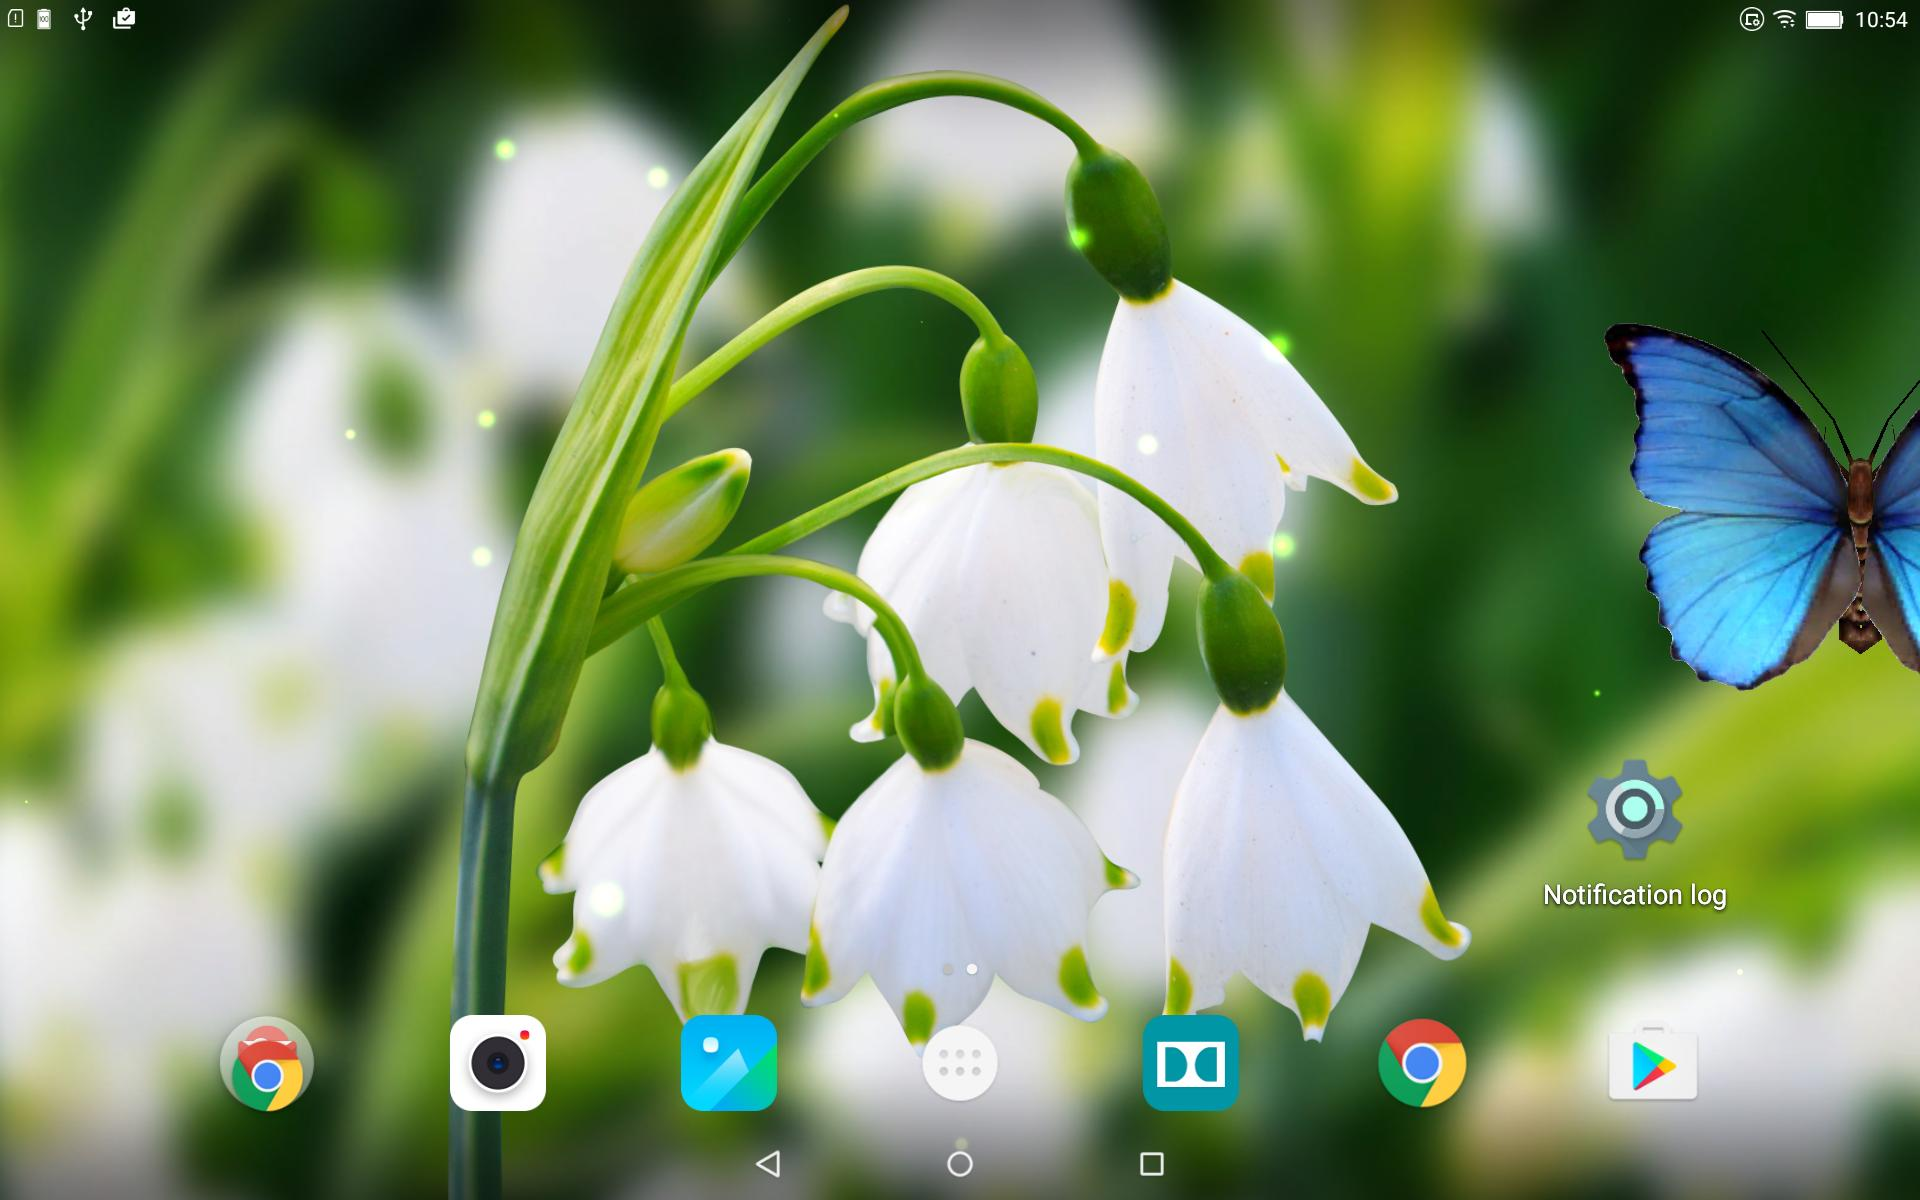 Flowers 3D Parallax Background for Android - APK Download